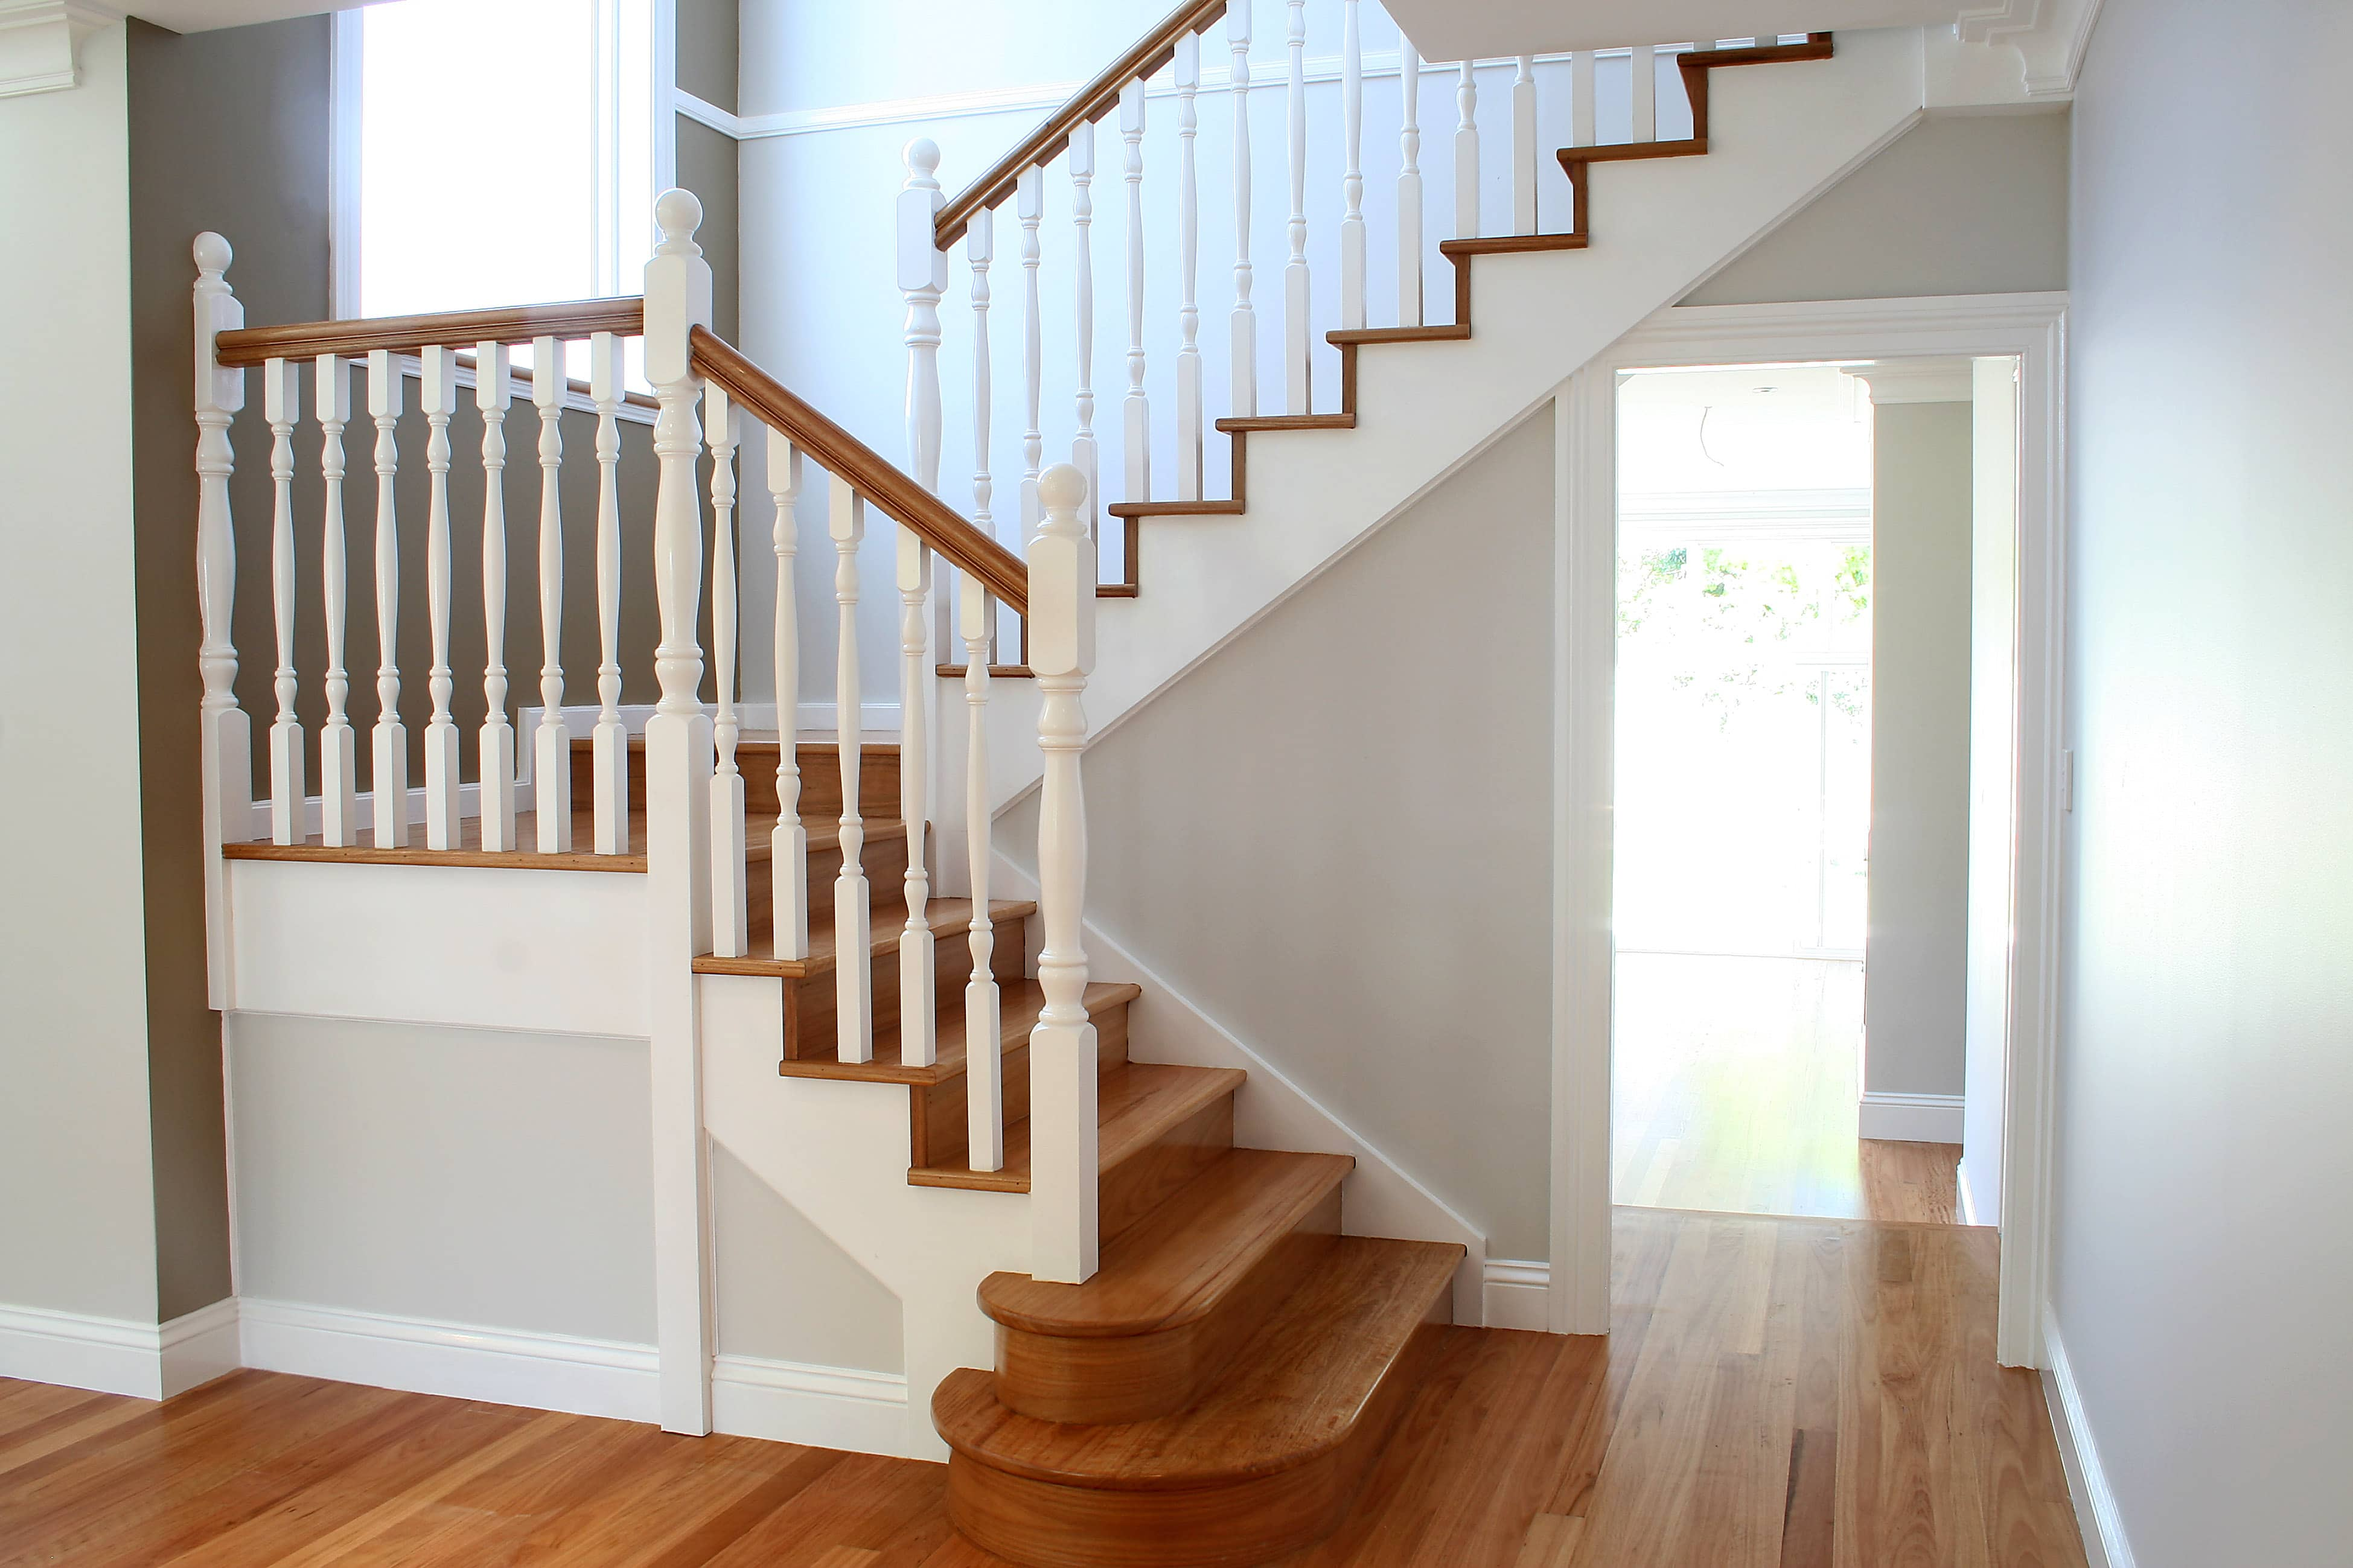 Picture of: Custom Made Staircases Staircase Balustrade Designs Designer Staircases